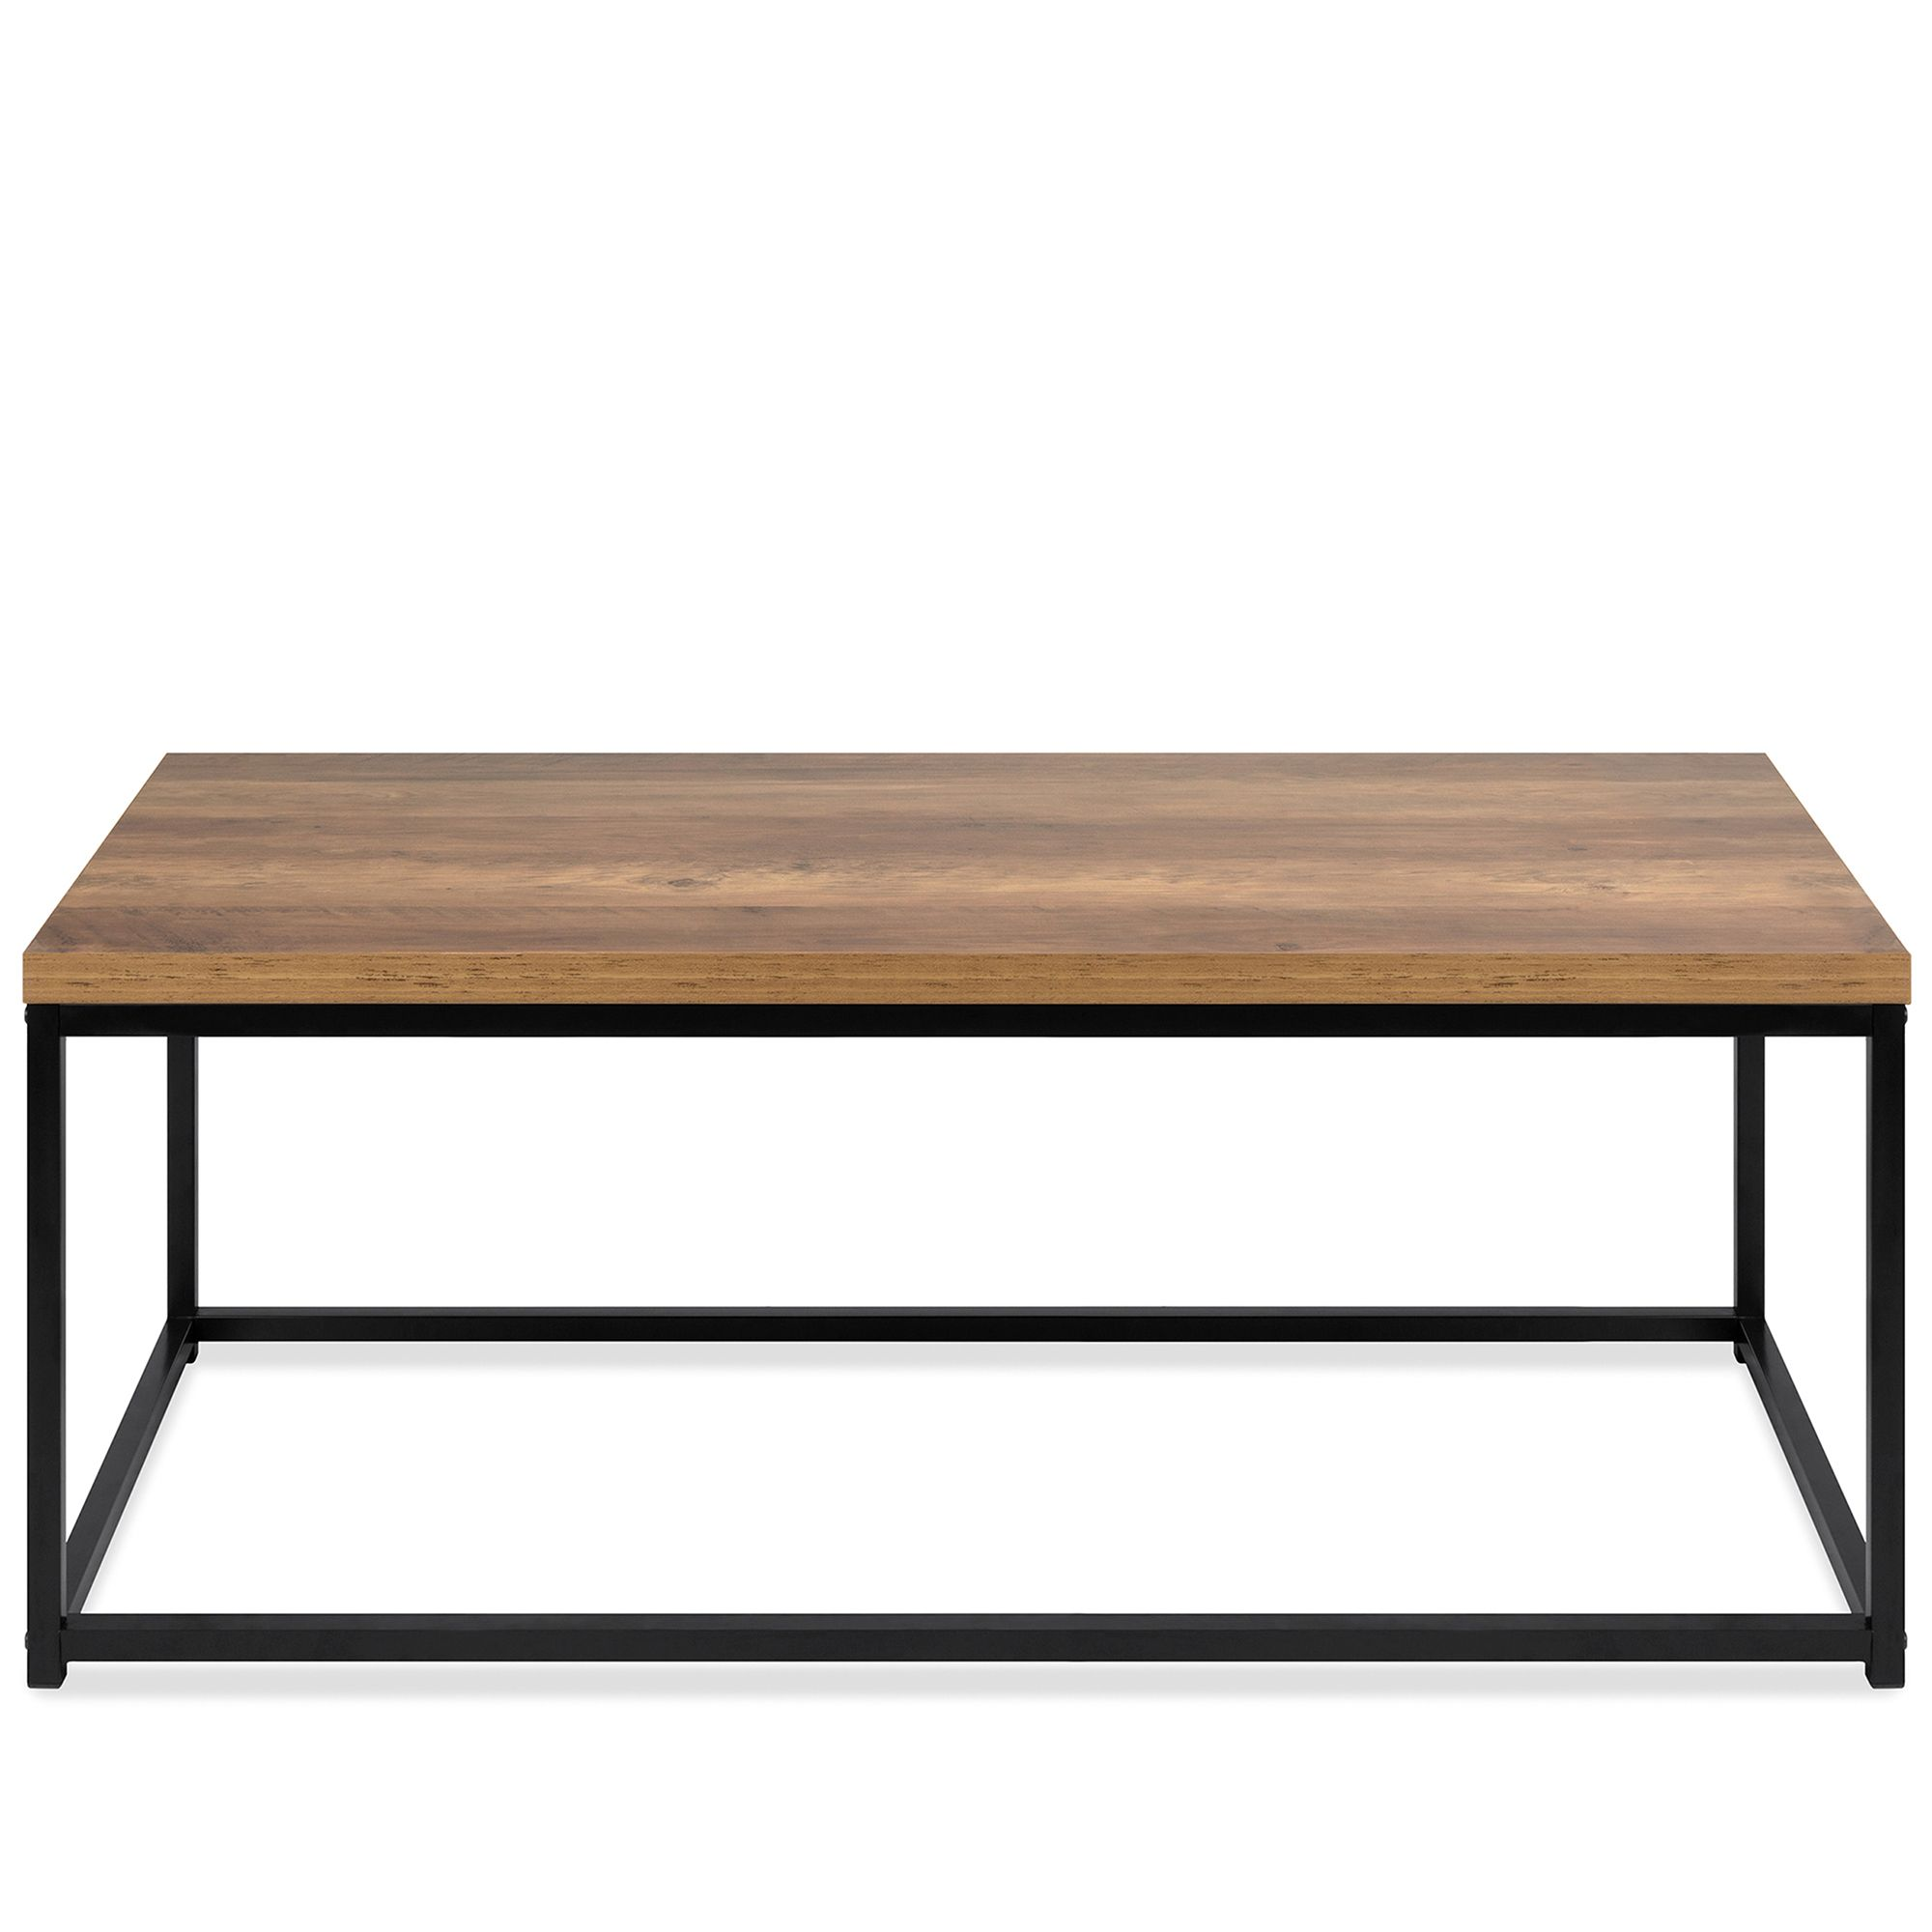 Best Choice Products 44in Modern Industrial Style Rectangular Wood Grain Top Coffee Table W Metal Frame 1 25in Top Walmart Com Coffee Table Metal Frame Coffee Table Metal Coffee Table [ 2000 x 2000 Pixel ]